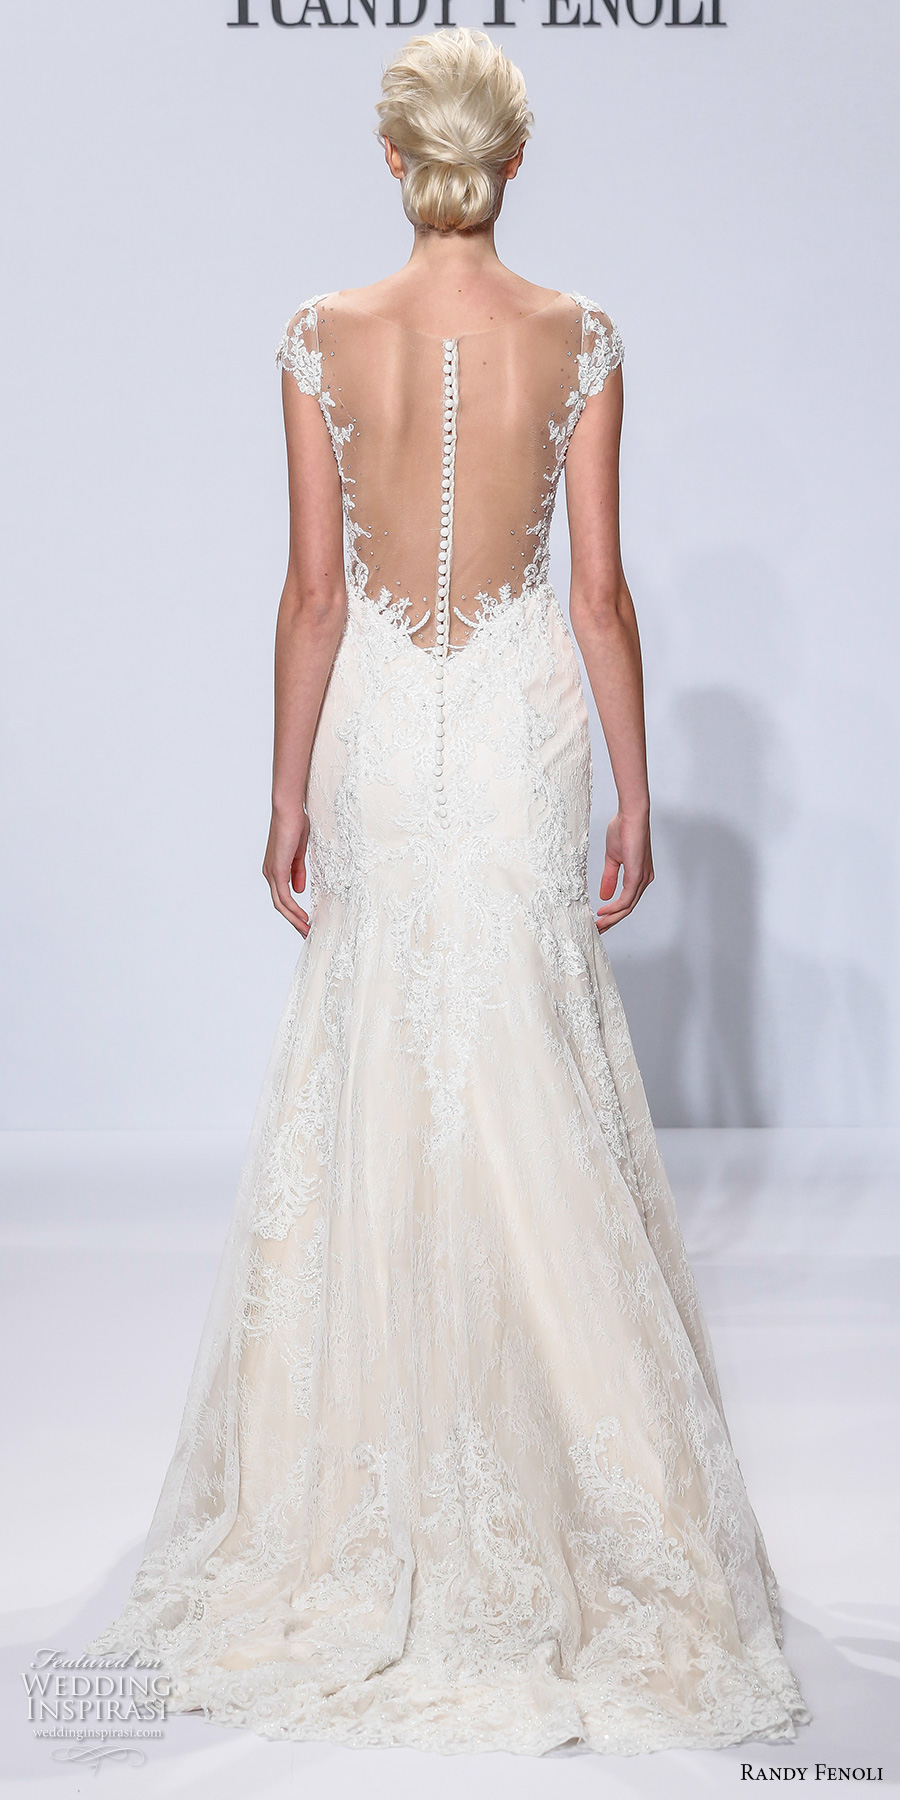 randy fenoli spring 2018 bridal cap sleeves deep plunging sweetheart neckline full embellishment fit and flare wedding dress sheer button back sweep train (09) bv